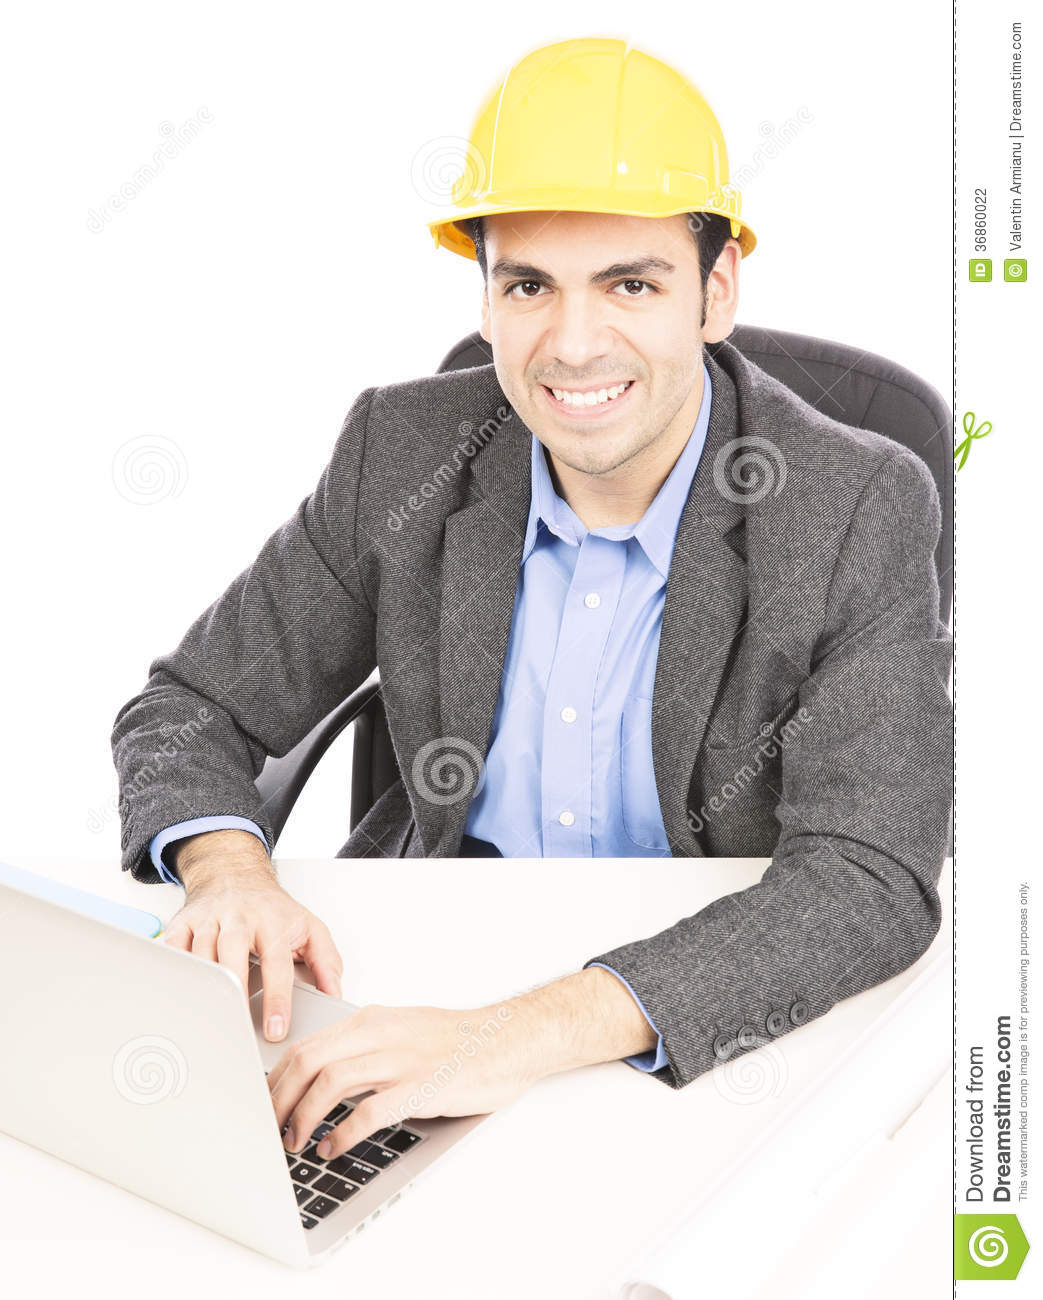 Contractor in office